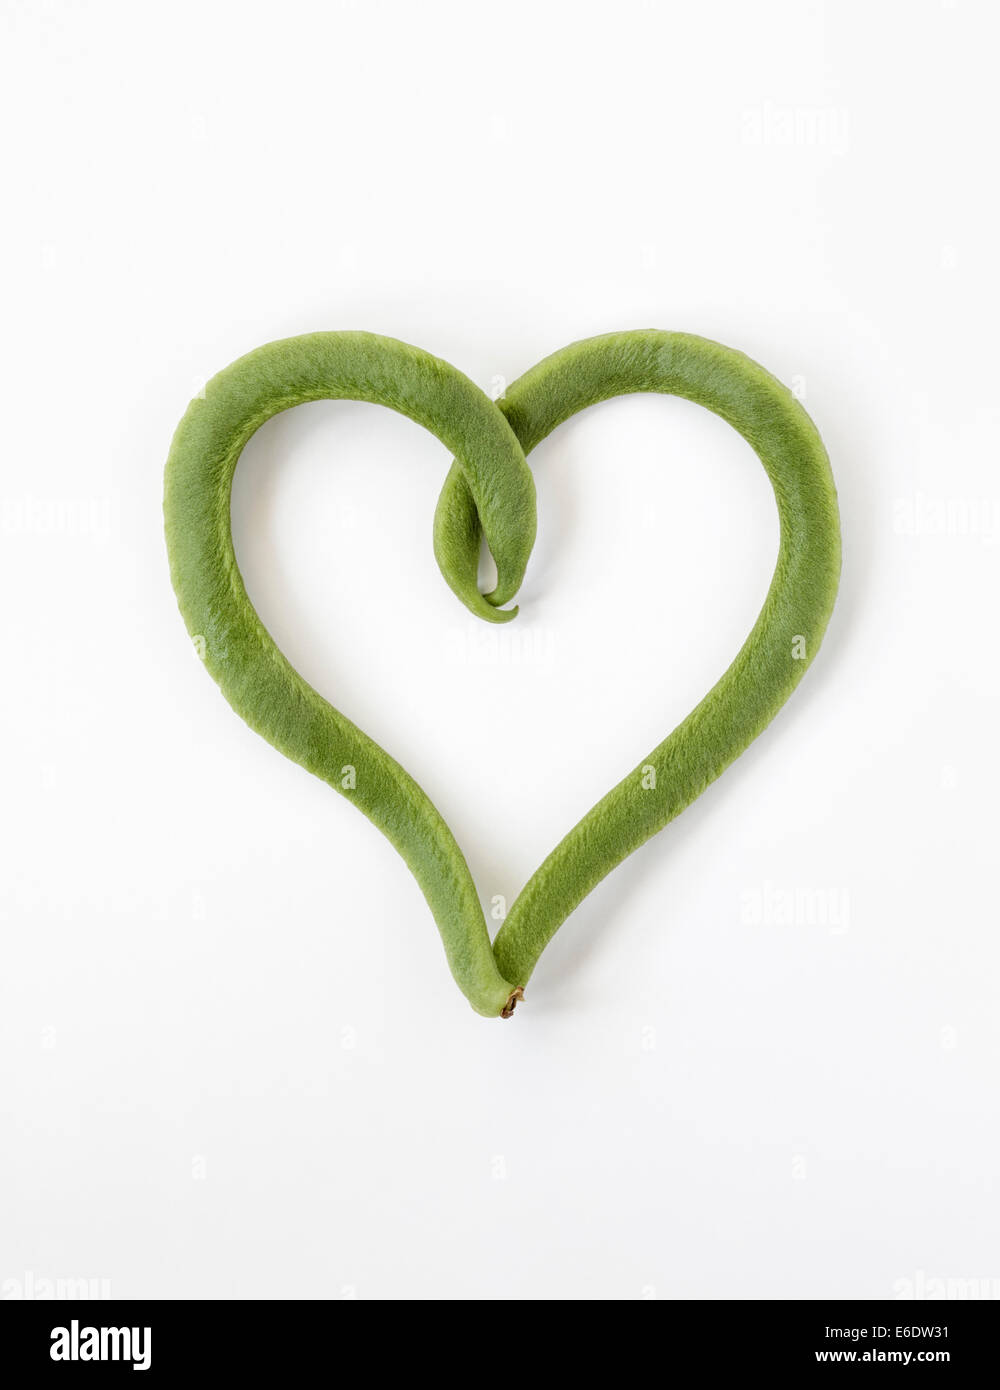 Curled Runner Beans in the shape of a heart - Stock Image